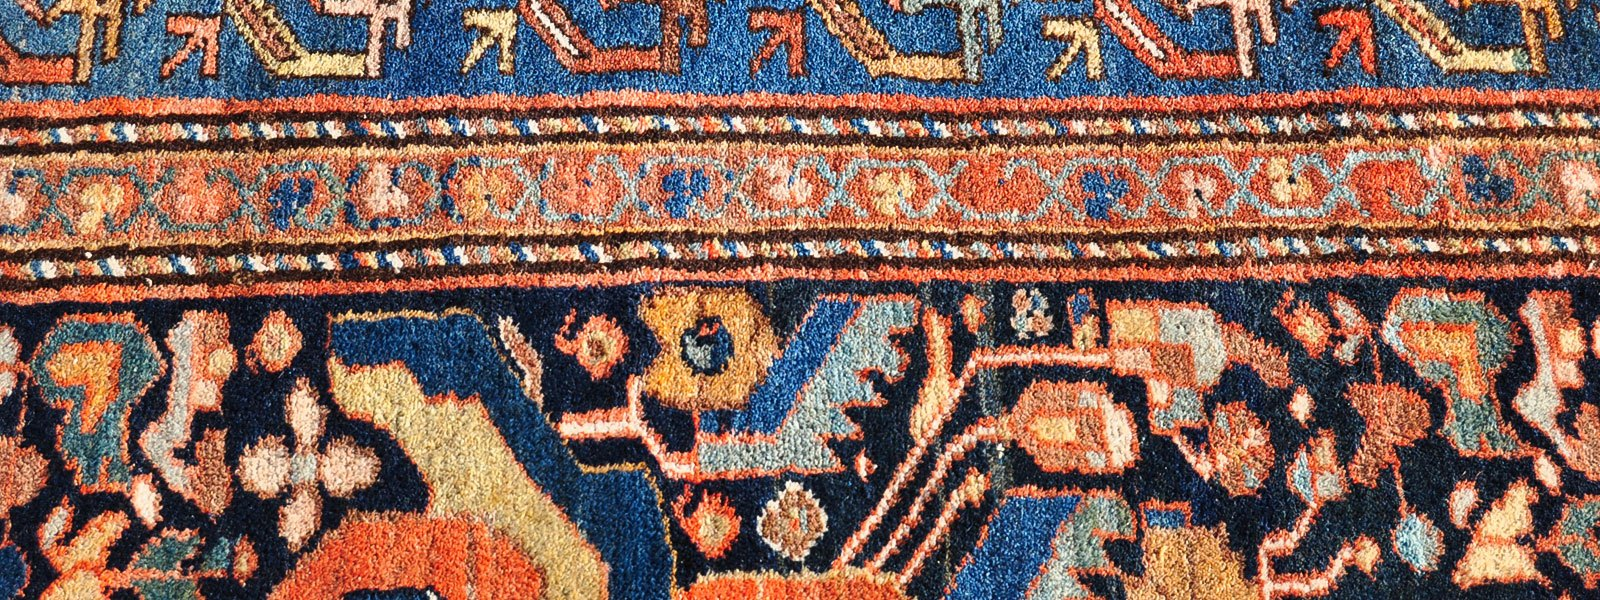 Persian Heriz Rug from Ahar — 12 ft. 5 in. by 9 ft. 5 in. — $1,350 — SOLD